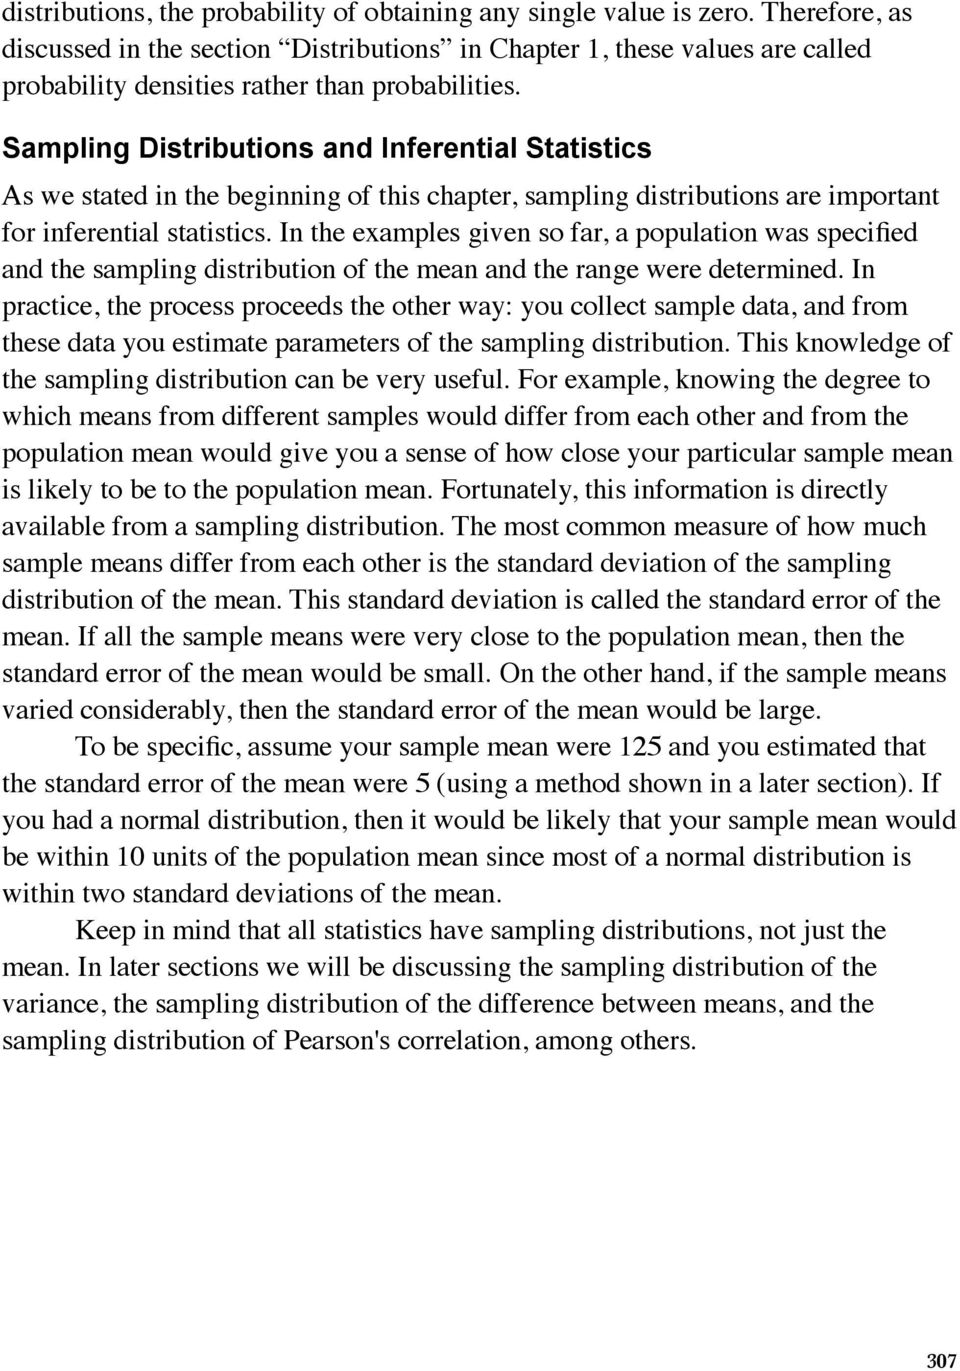 Sampling Distributions and Inferential Statistics As we stated in the beginning of this chapter, sampling distributions are important for inferential statistics.